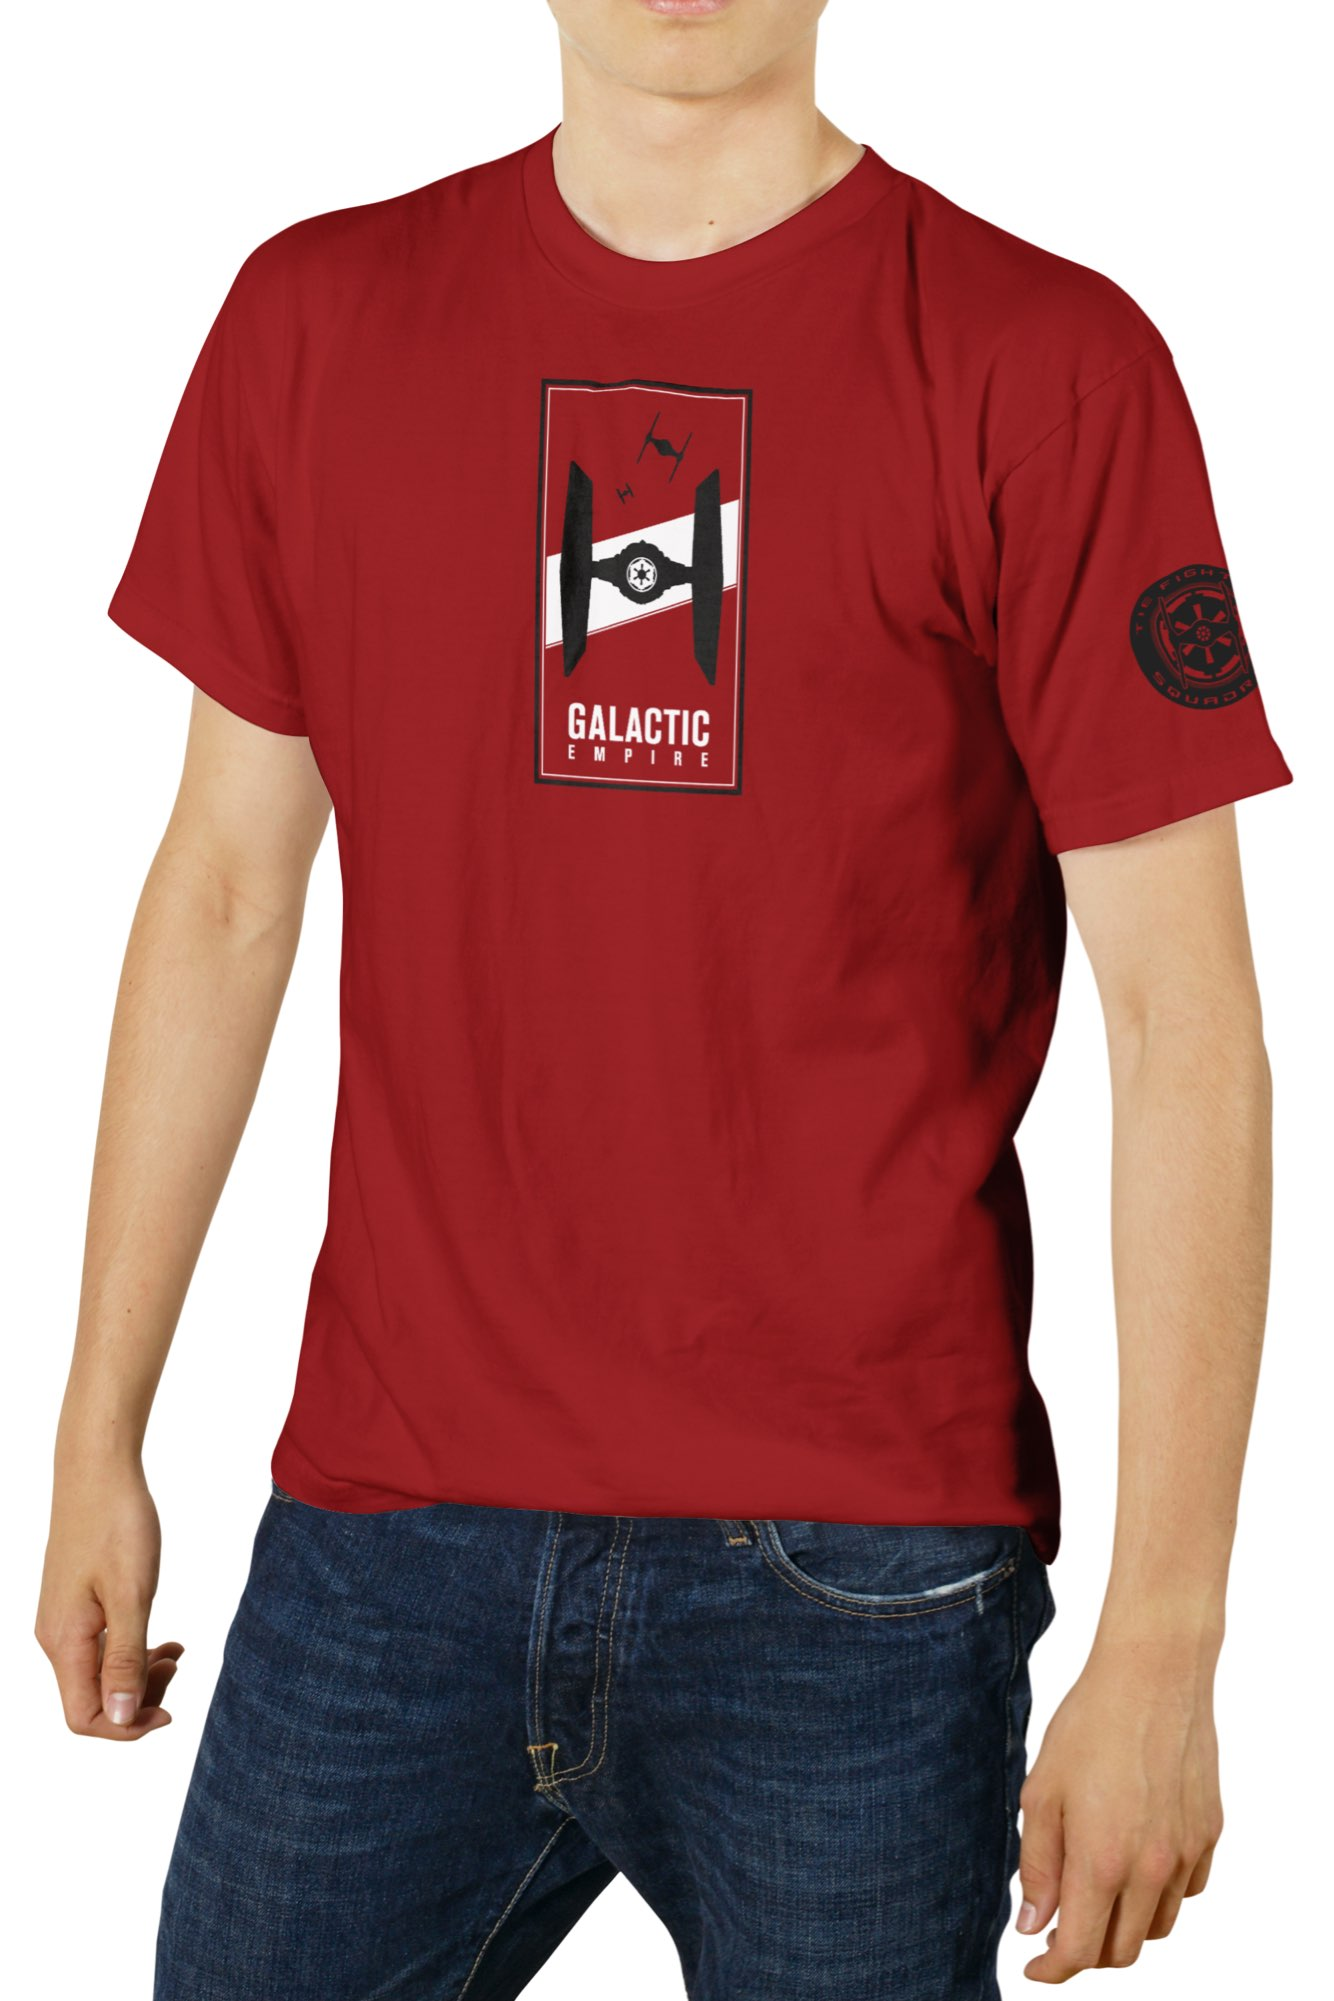 O.FLASH - GALACTIC EMPIRE CAMISETA ROJA CHICO T-XXL STAR WARS